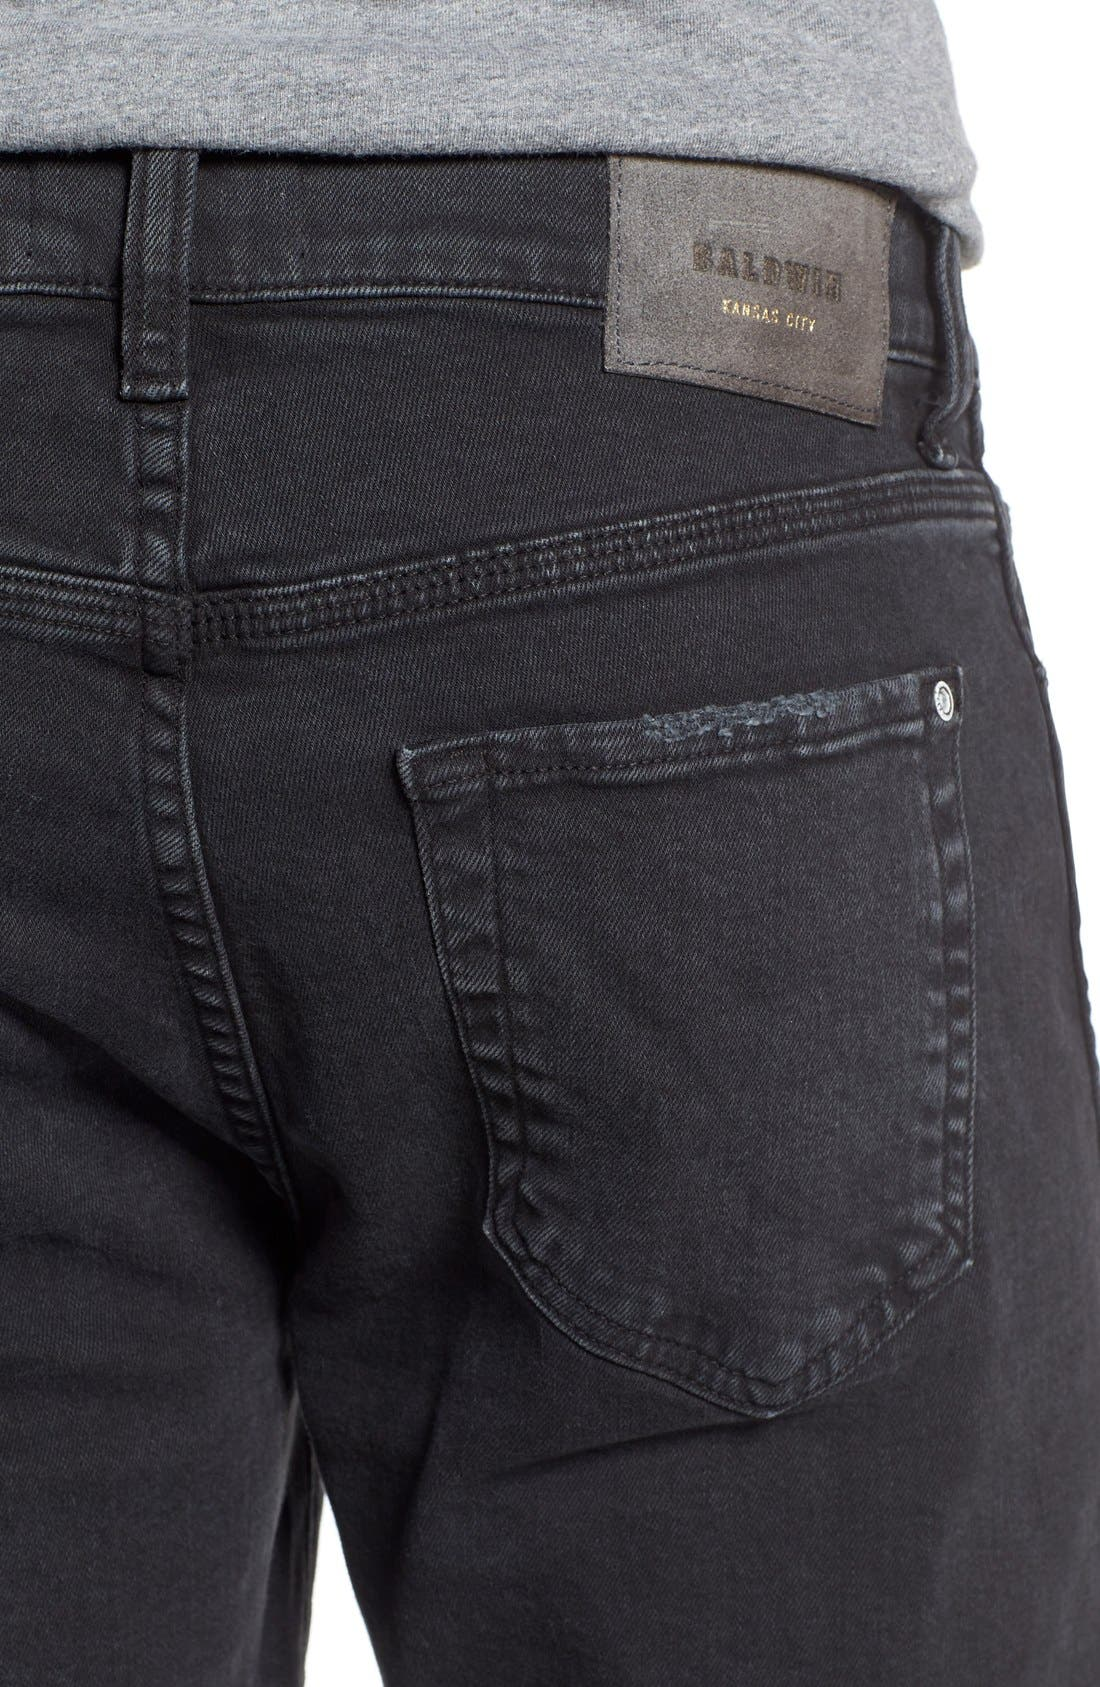 'Henley' Slim Fit Jeans,                             Alternate thumbnail 5, color,                             Smoke